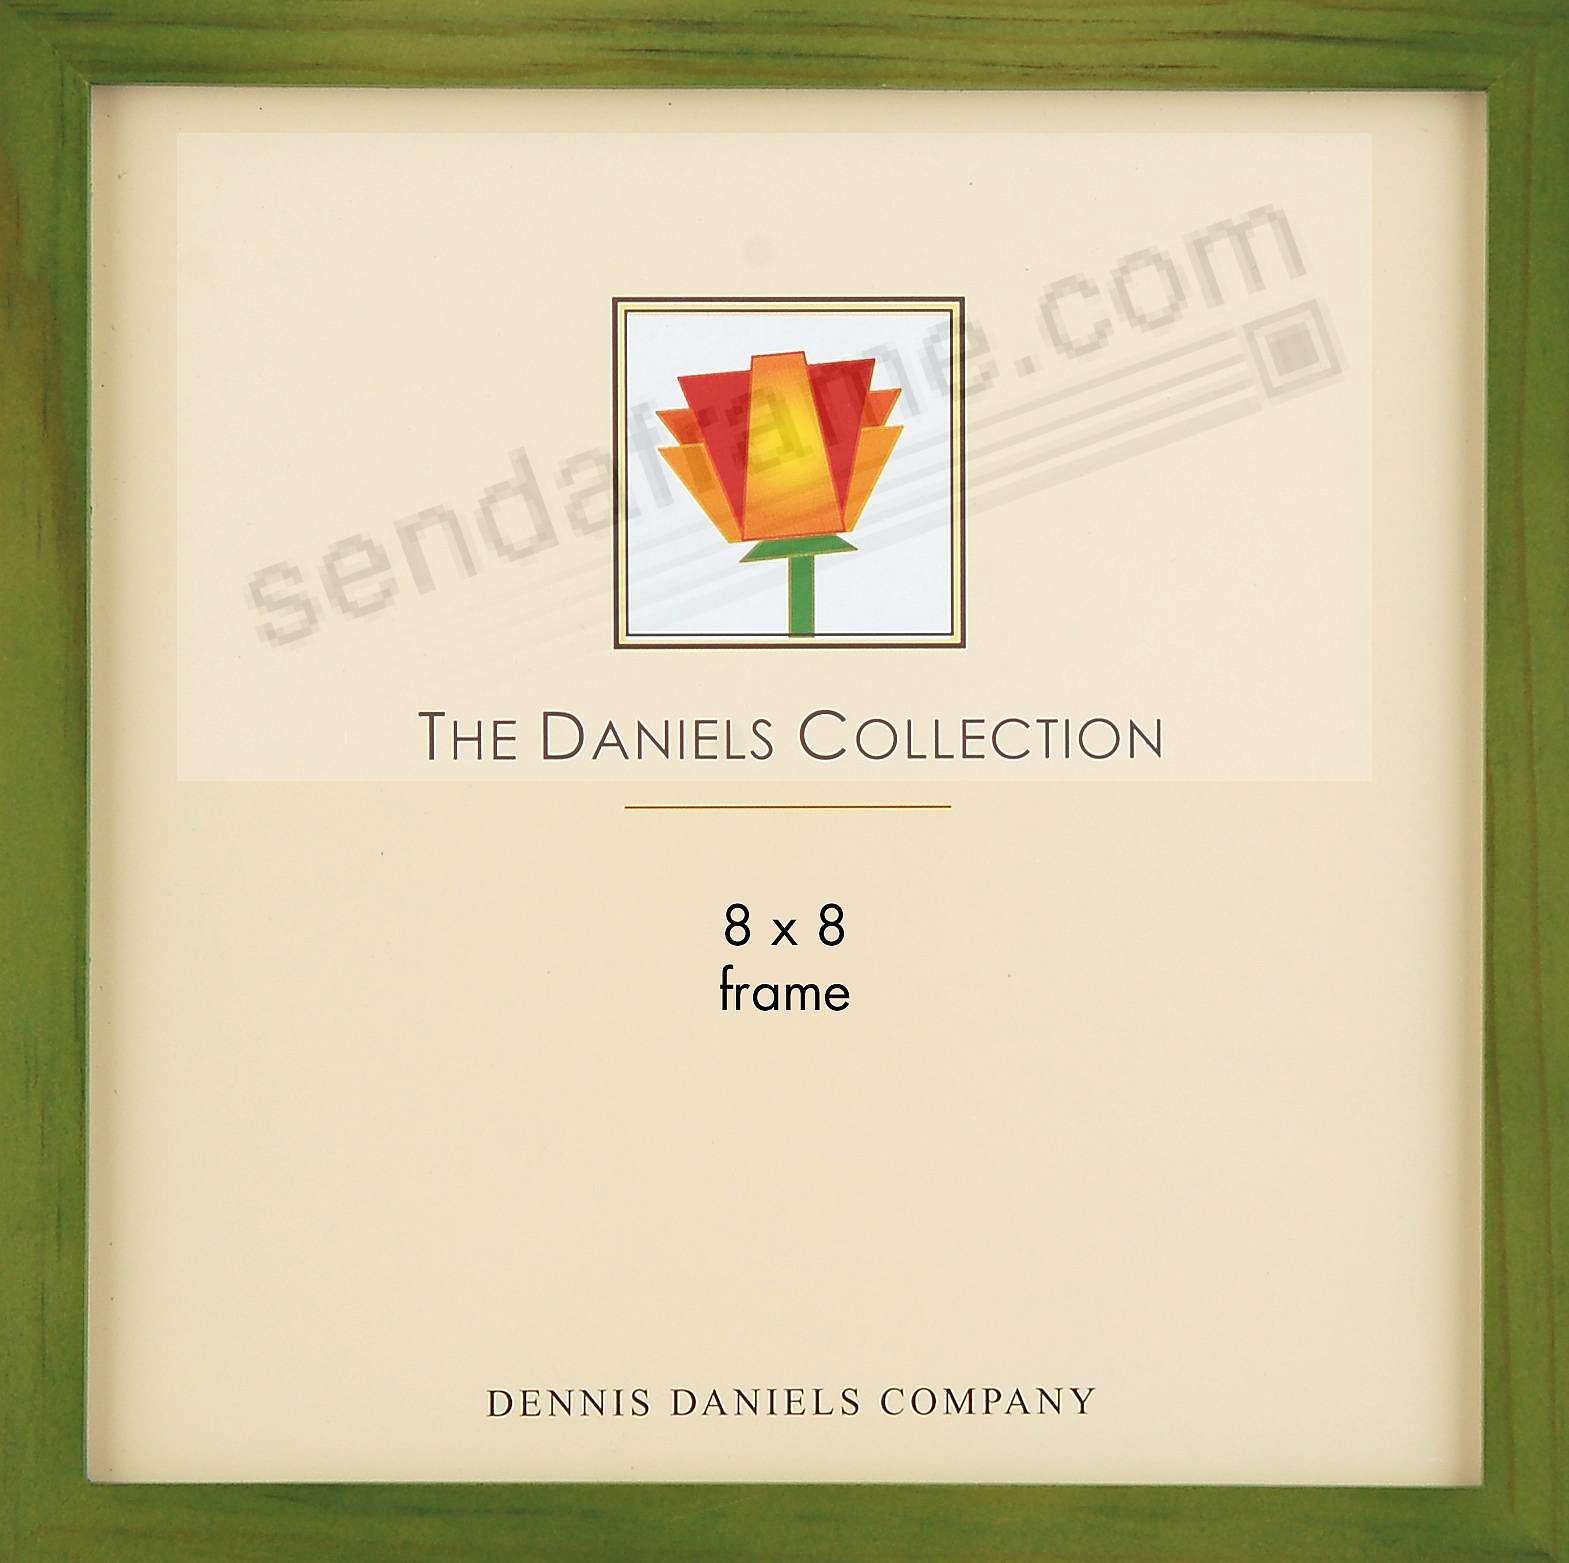 The Original DANIELS W41: Square Corner GALLERY WOODS Green-Stained Oak finish 8x8 frame by Dennis Daniels®